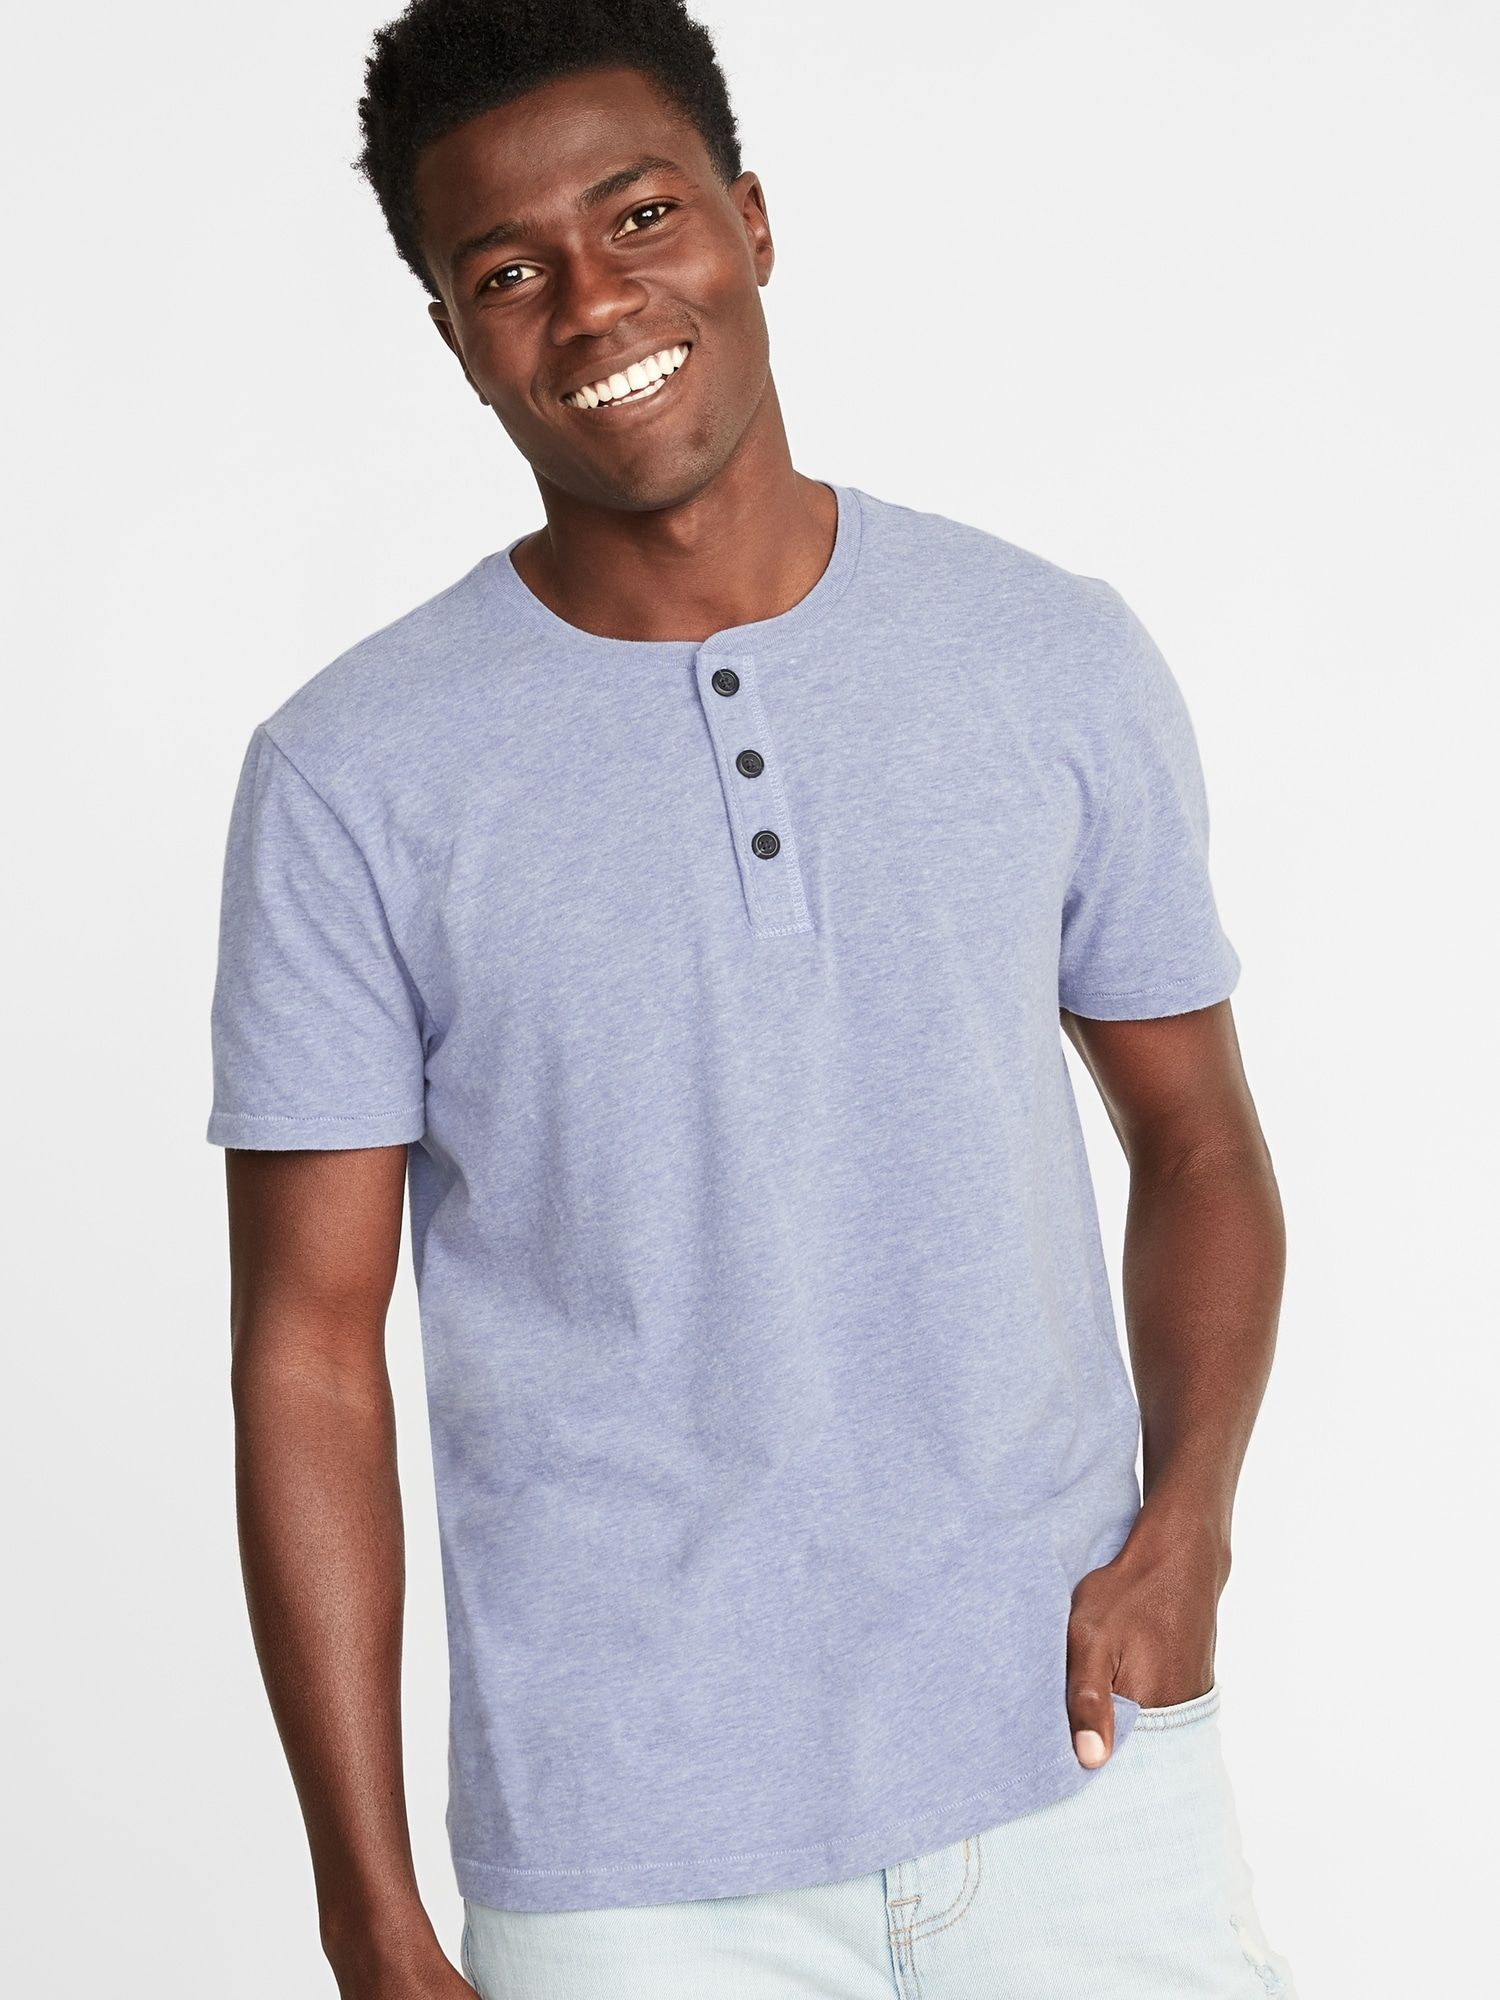 dbd88668 Soft-Washed Jersey Henley for Men in 2019 | Stitch fix | Mens tops ...